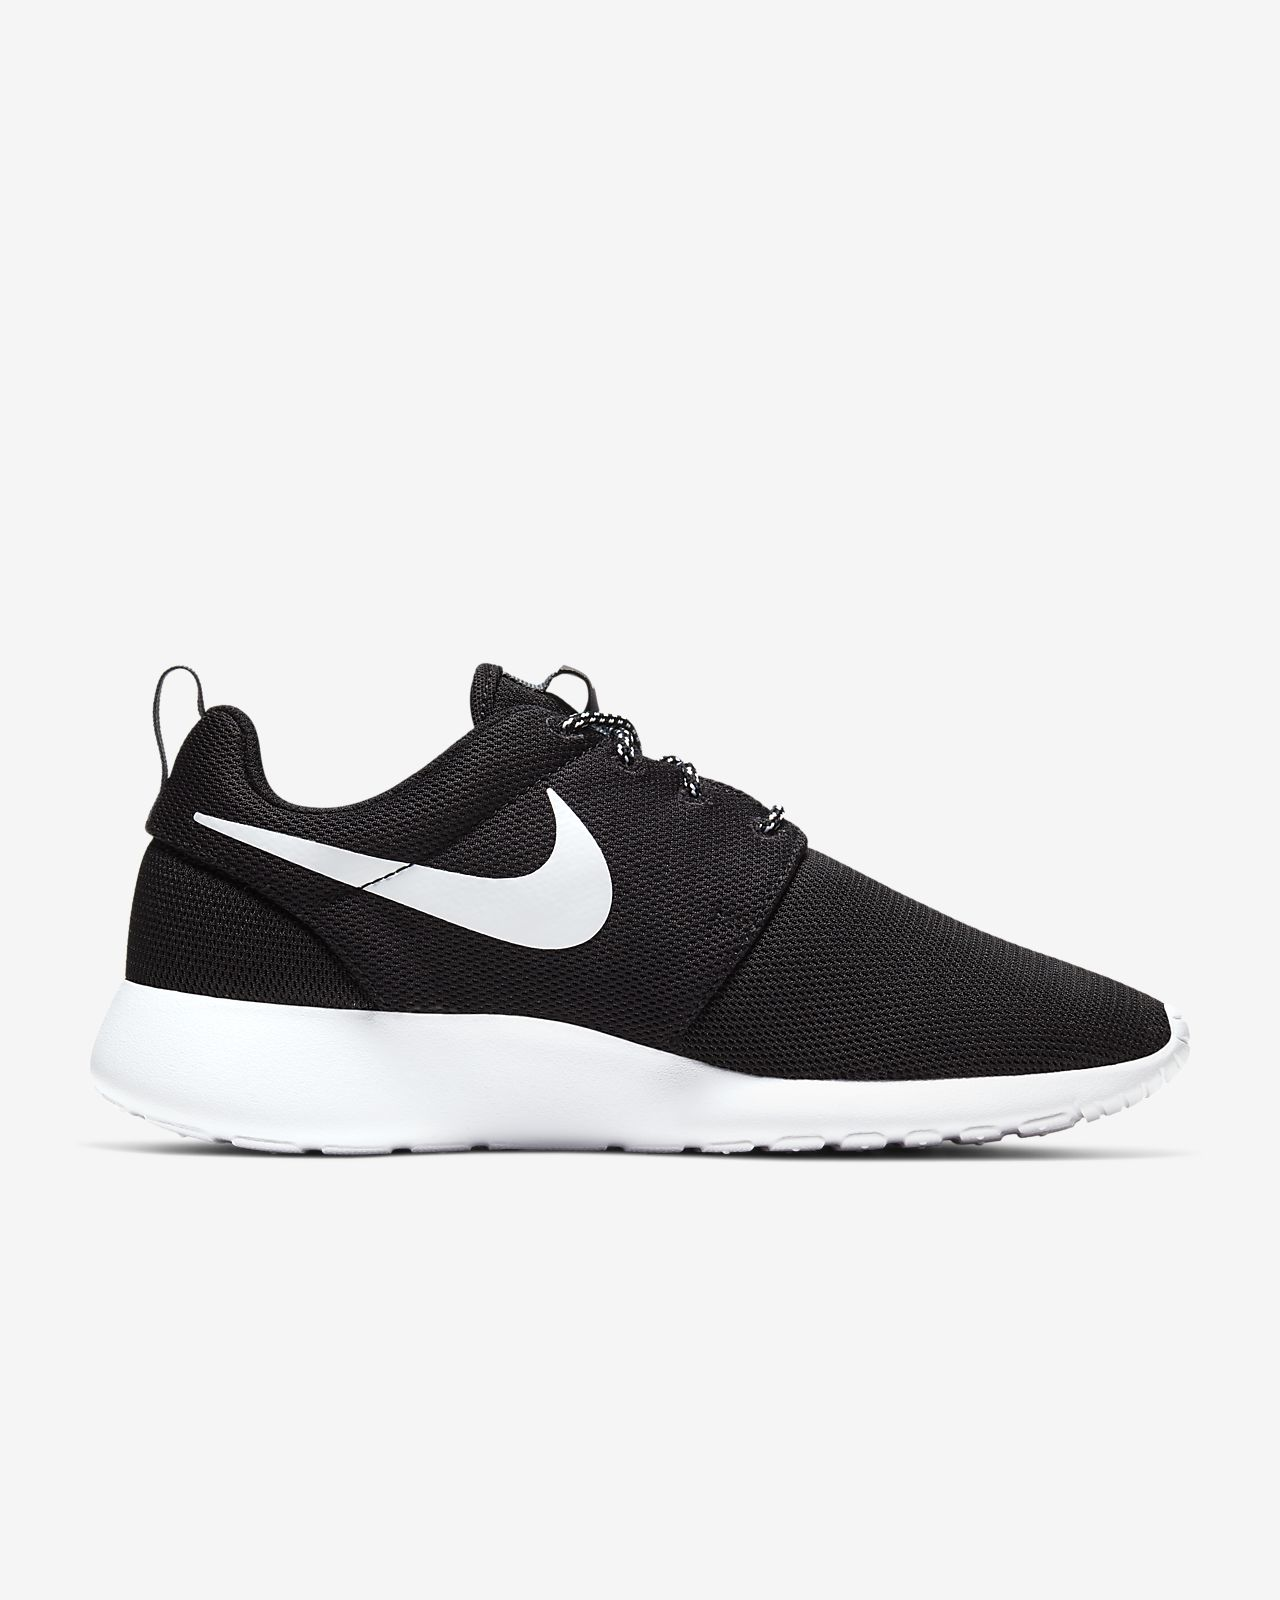 buy online 708c2 59a04 ... Nike Roshe One Womens Shoe